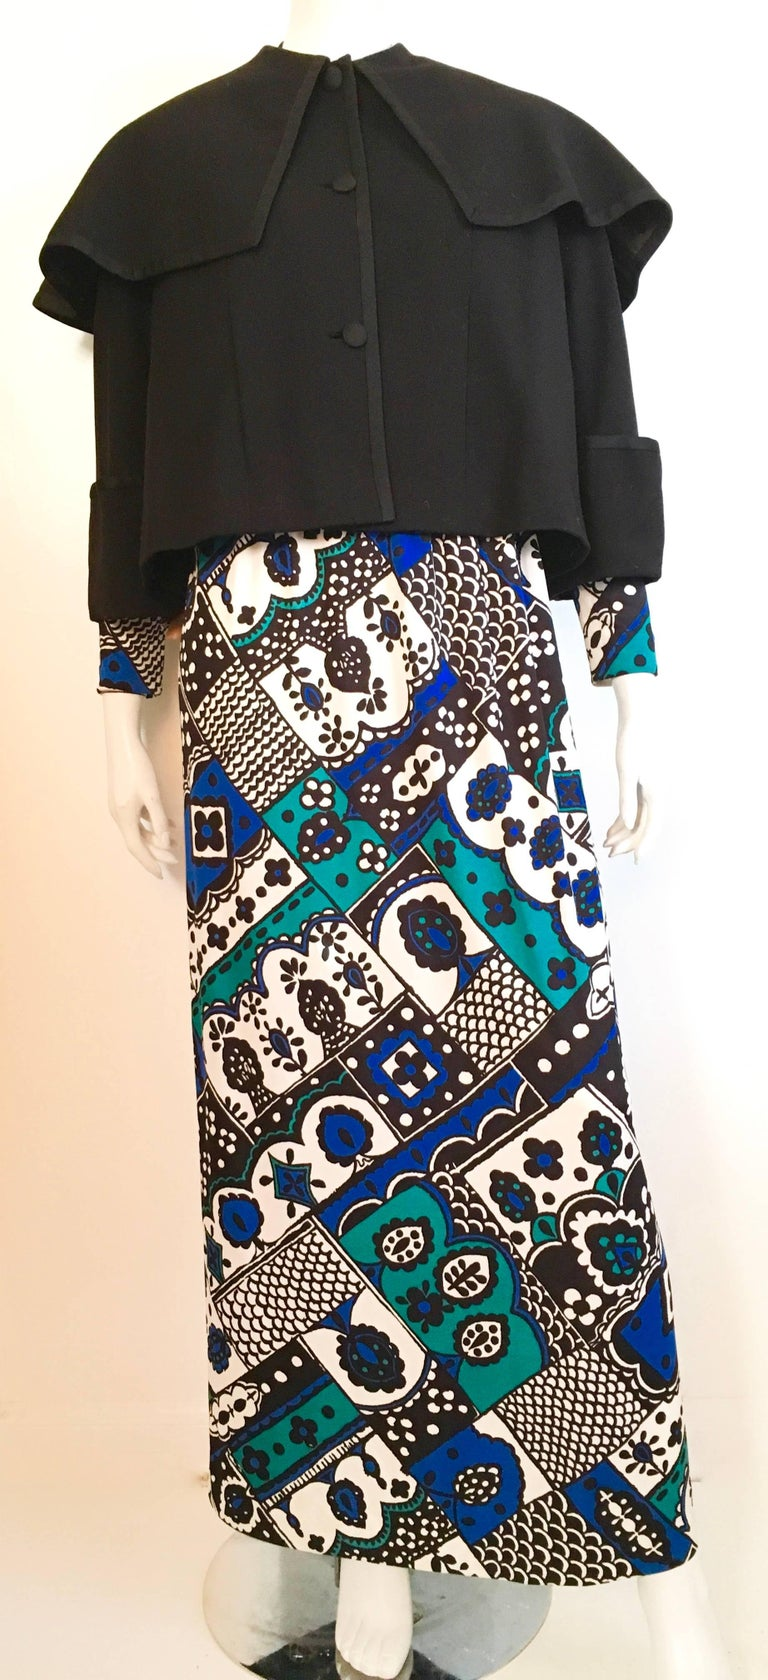 Young Dimension for Saks Fifth Avenue 1980s MOD Maxi whimsical dress is a size 4.  Ladies please grab your tape measure so you can measure your bust, waist & hips to make certain this treasure will fit your lovely body. Fabulous to wear while